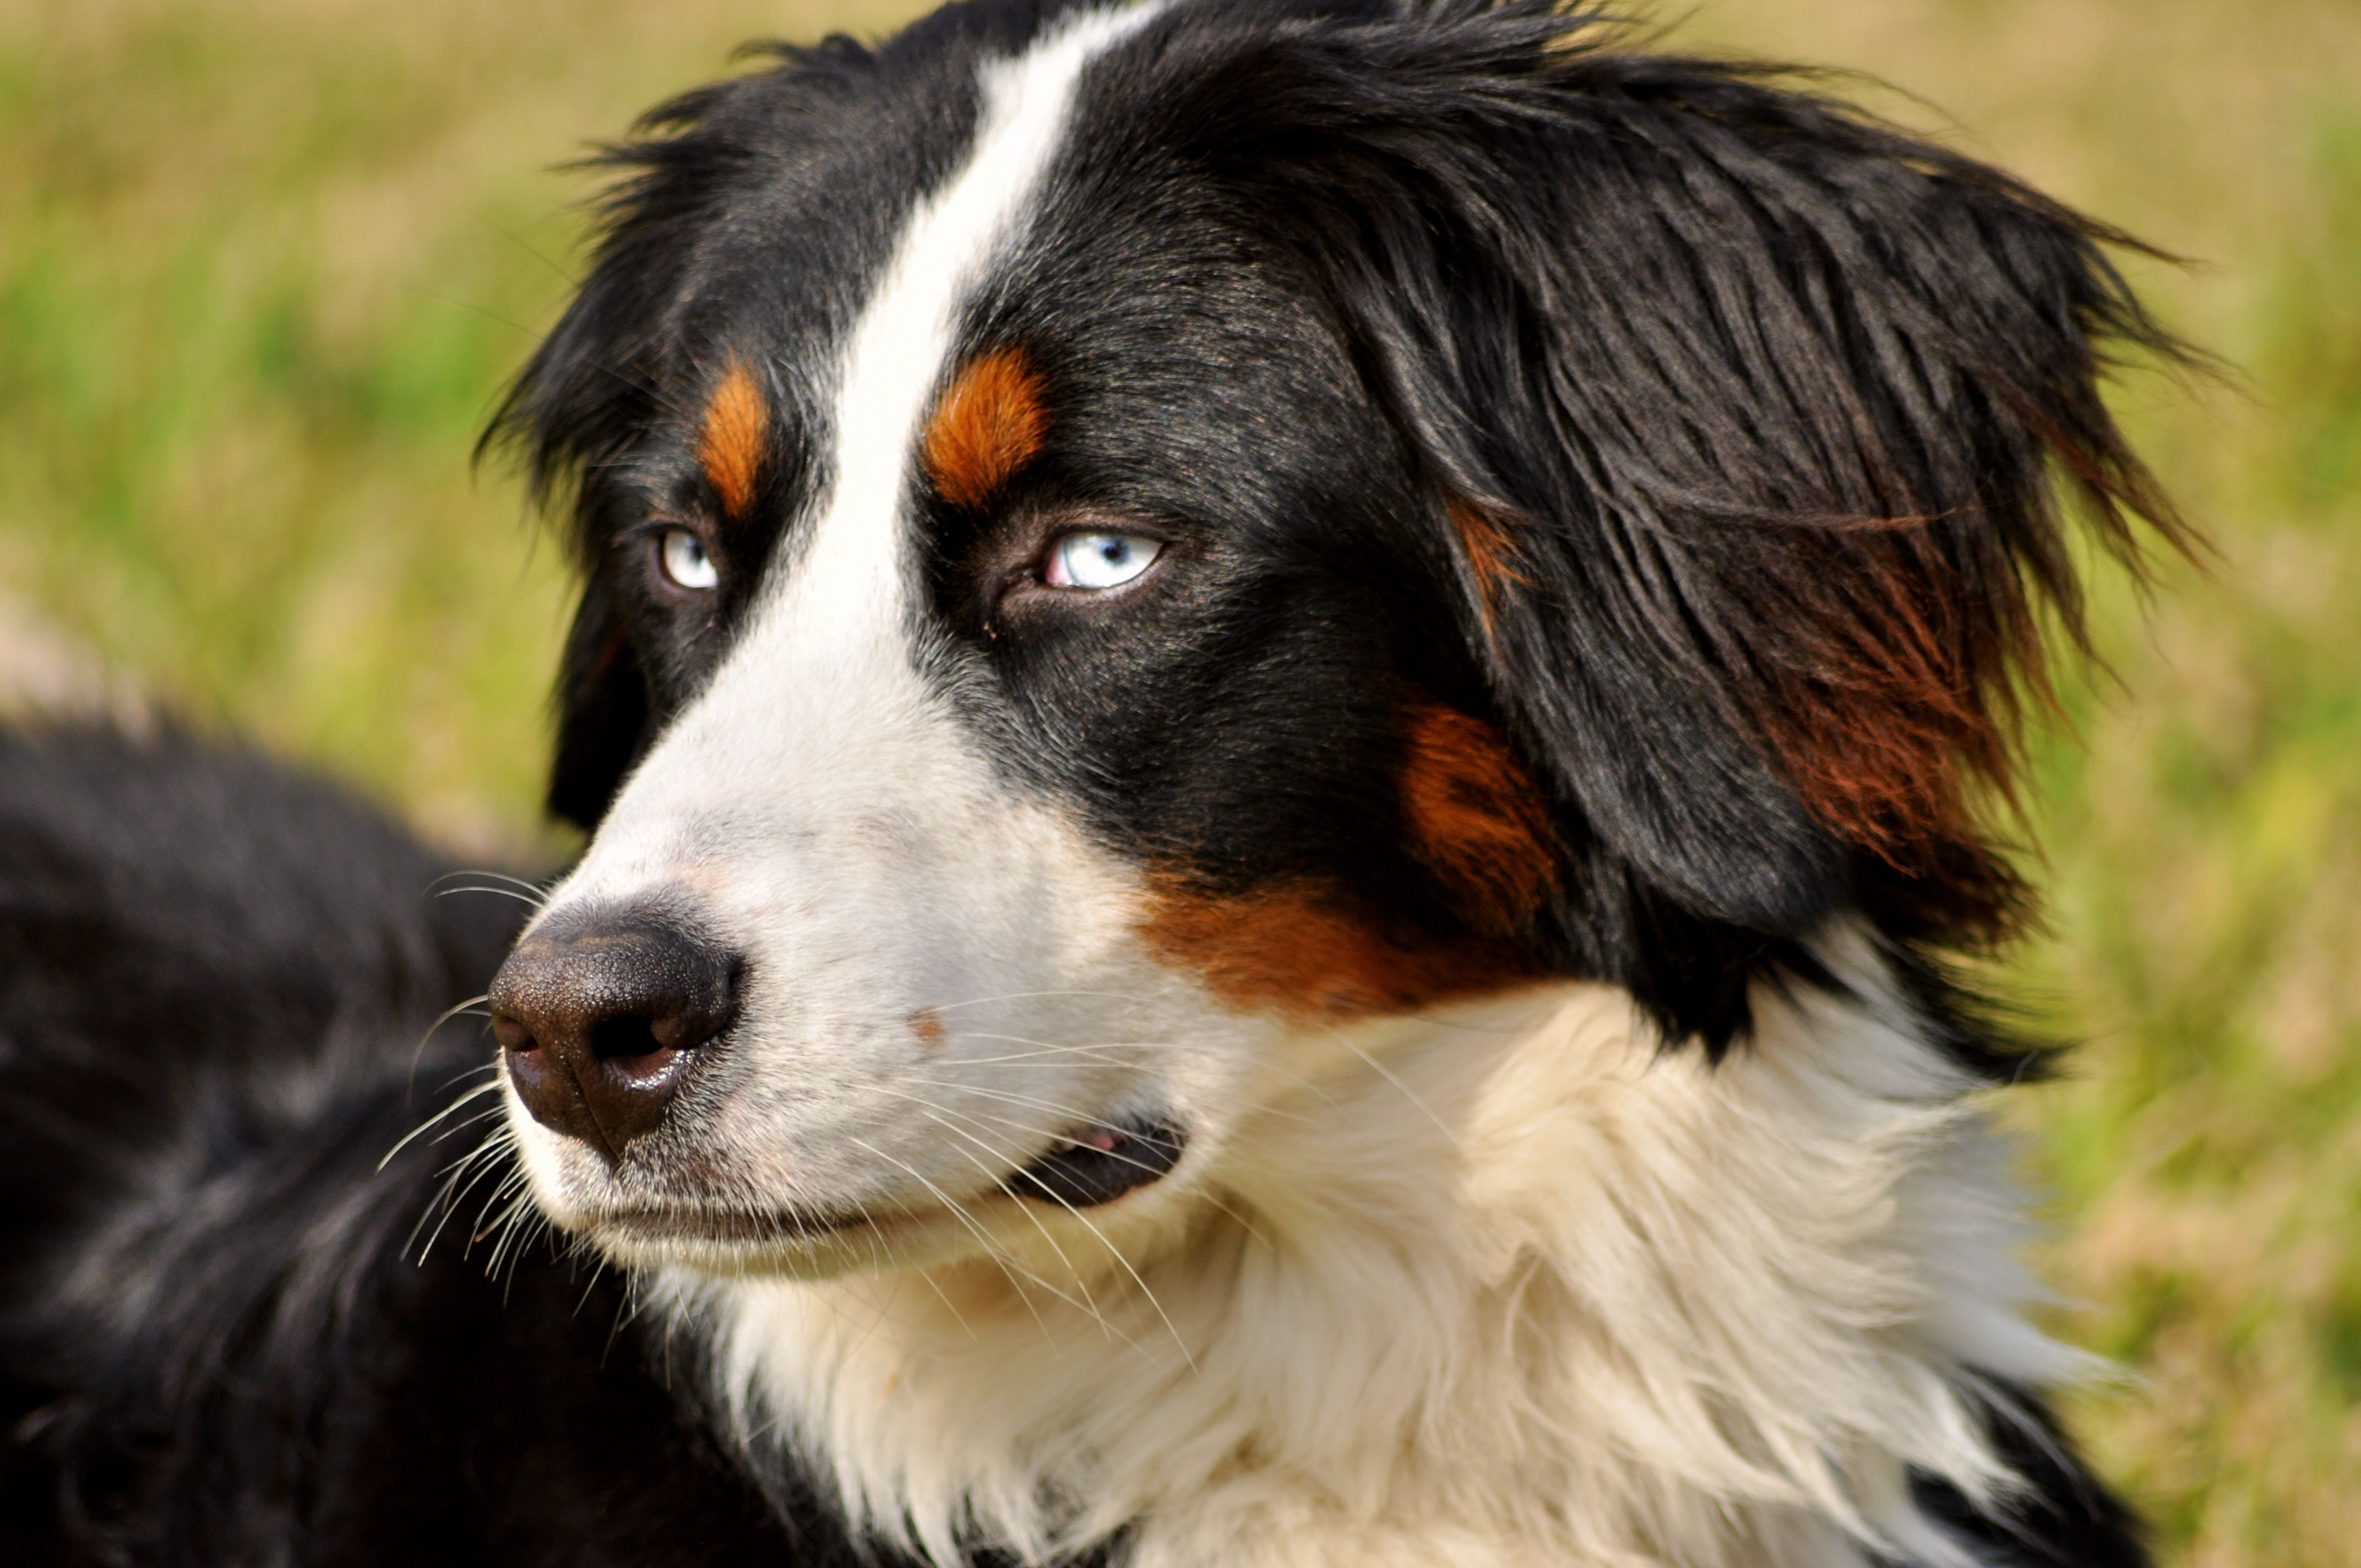 She Is An Bernese Mountain Dog Is A Type Of Dog Originating